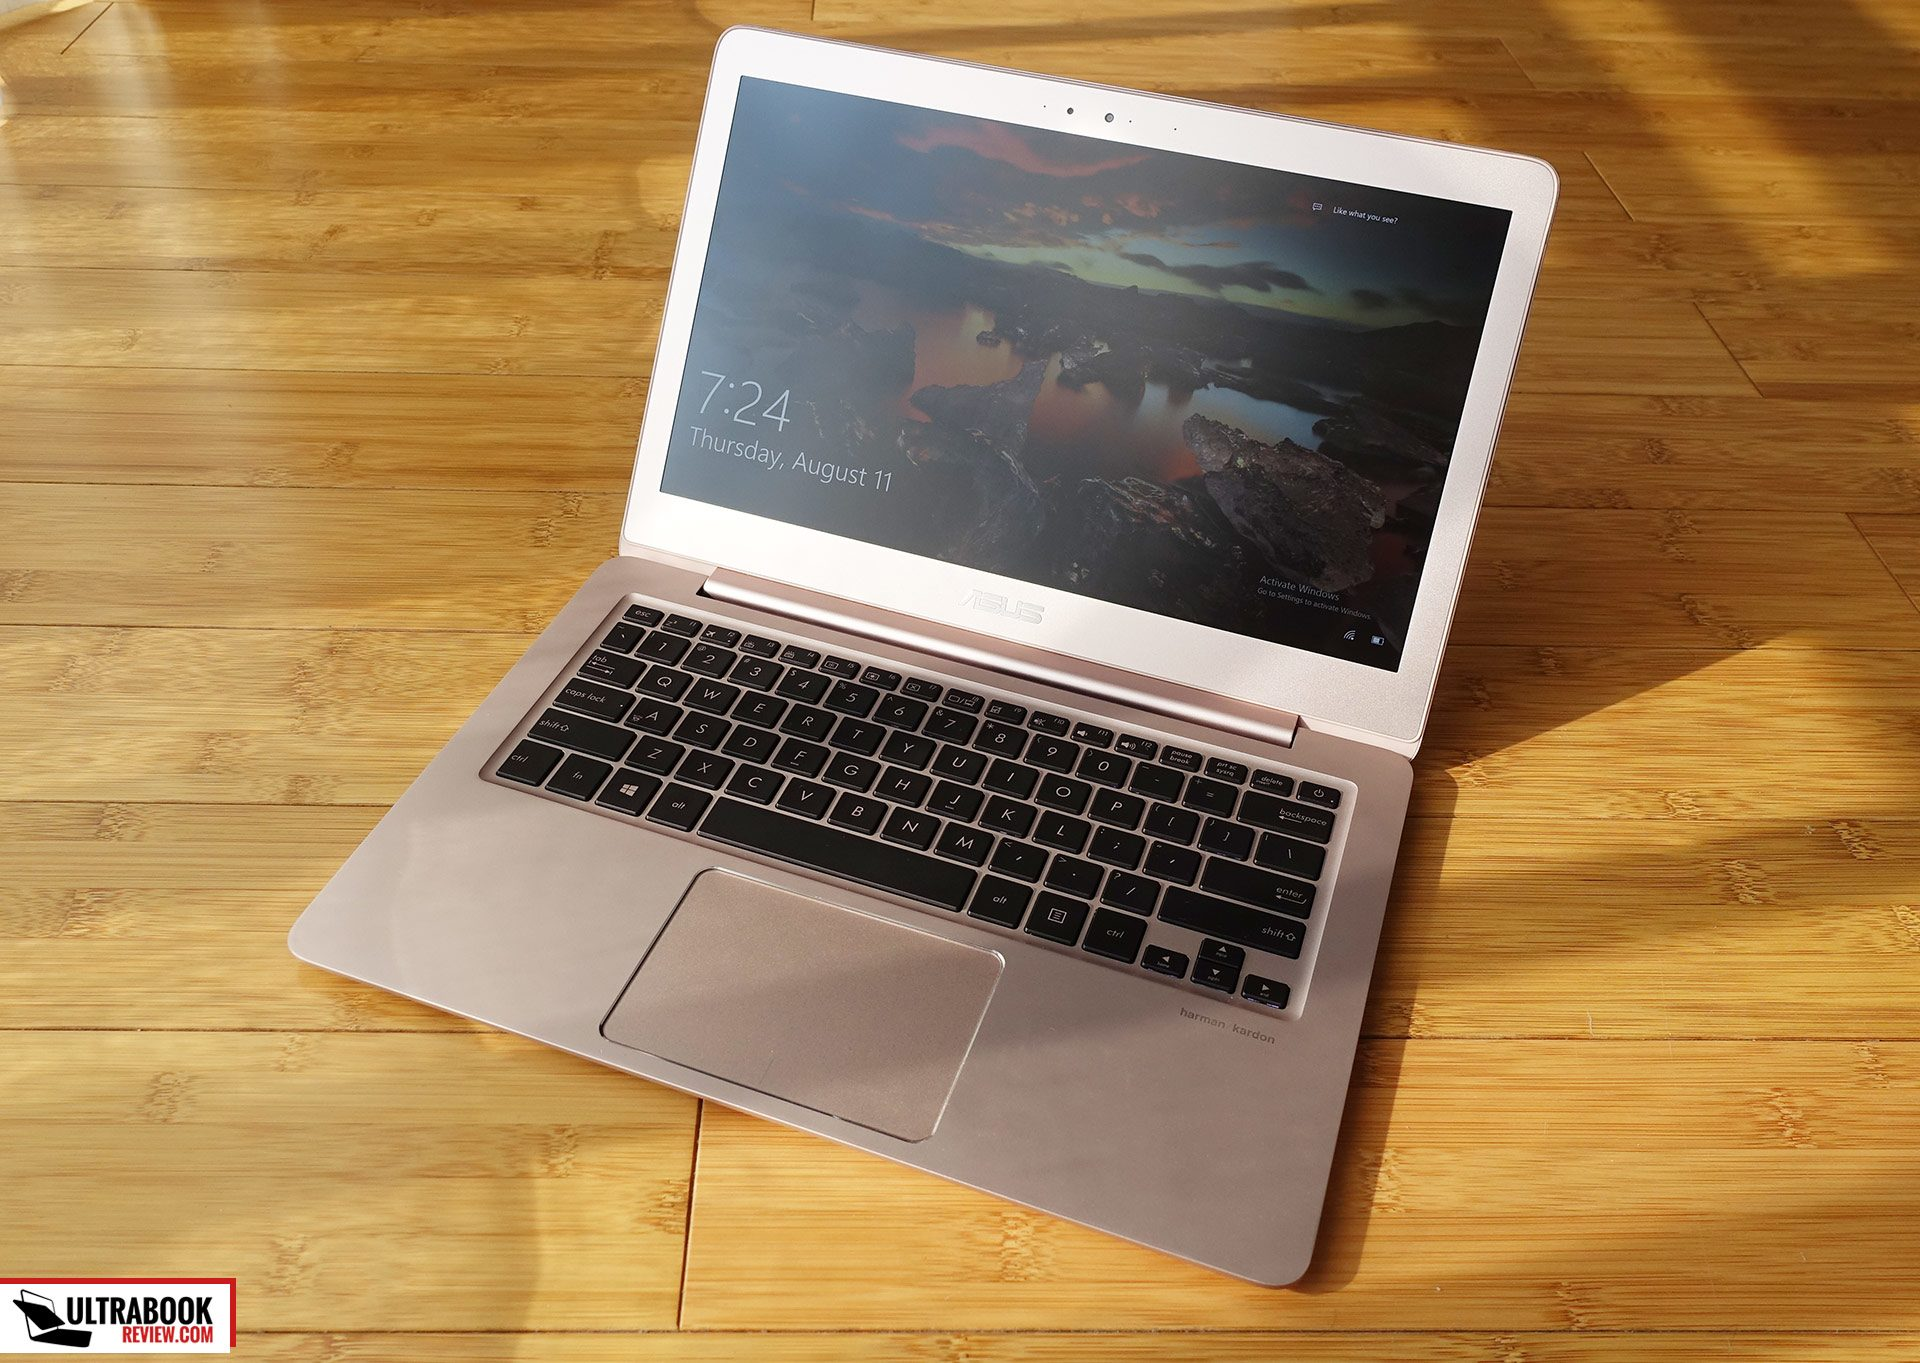 Asus Zenbook Ux330ua Review Premium 13 Incher For The Average Consumer